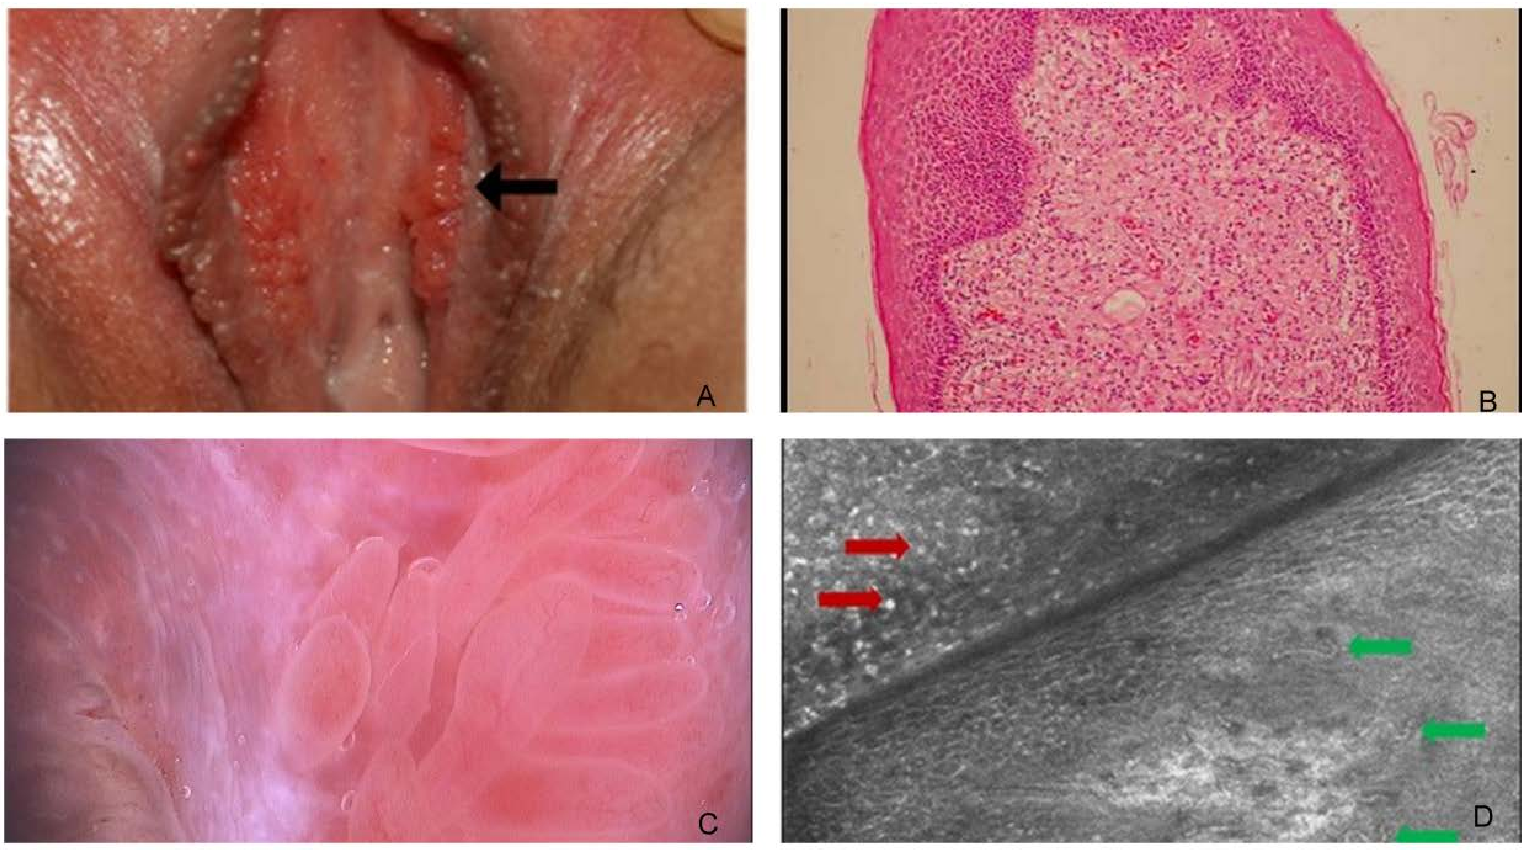 hpv on uvula treatment cervical cancer after hpv vaccine